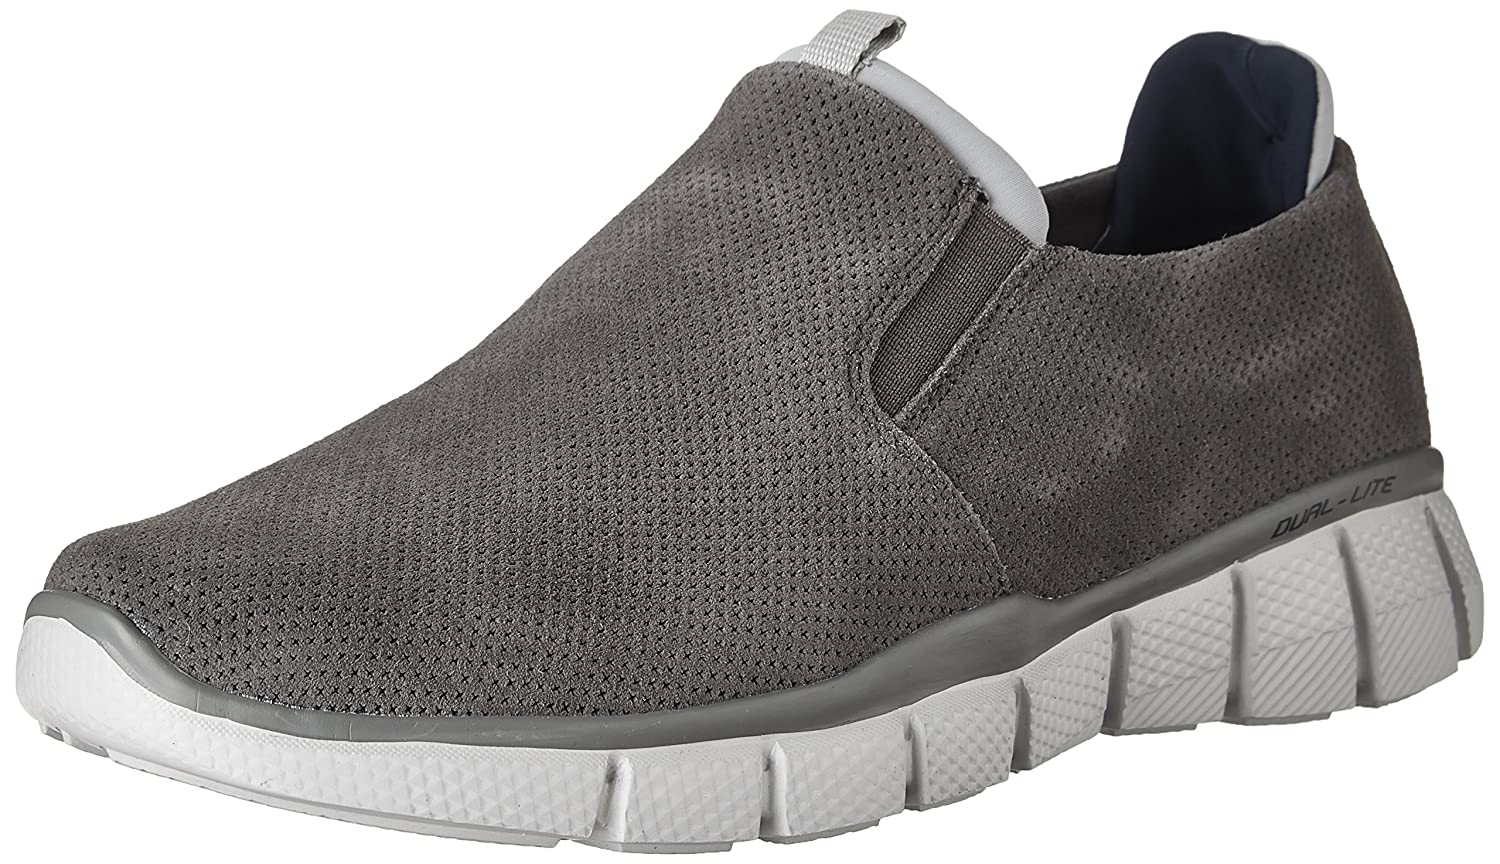 Skechers 51545 Herren Slipper  43 D(M) EU|Anthrazit